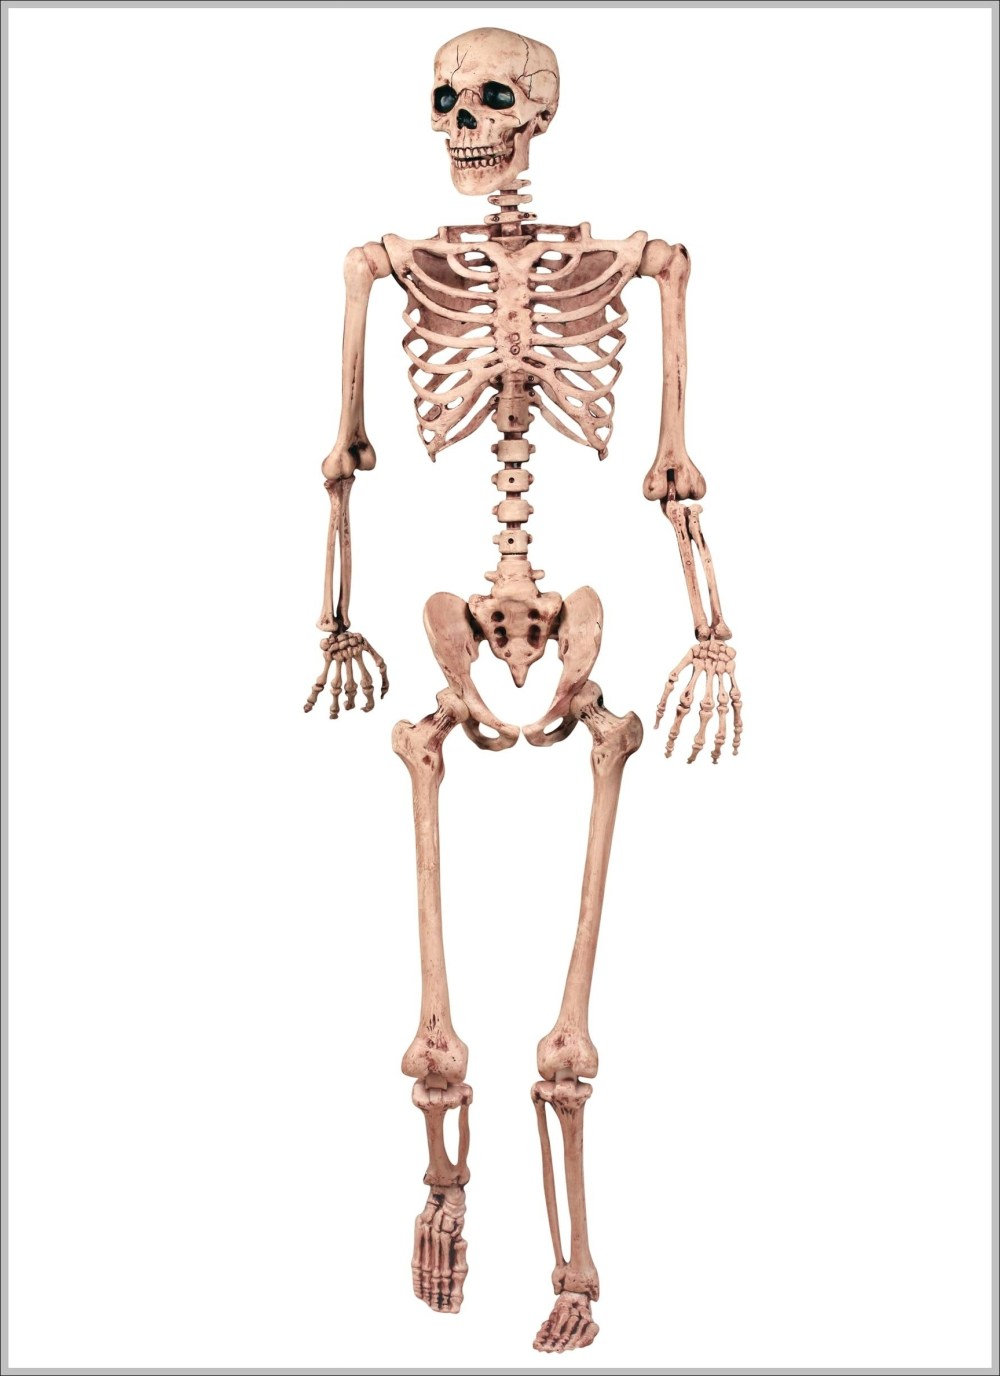 medium resolution of skeletal pictures diagram chart diagrams and charts with labels this diagram depicts skeletal pictures